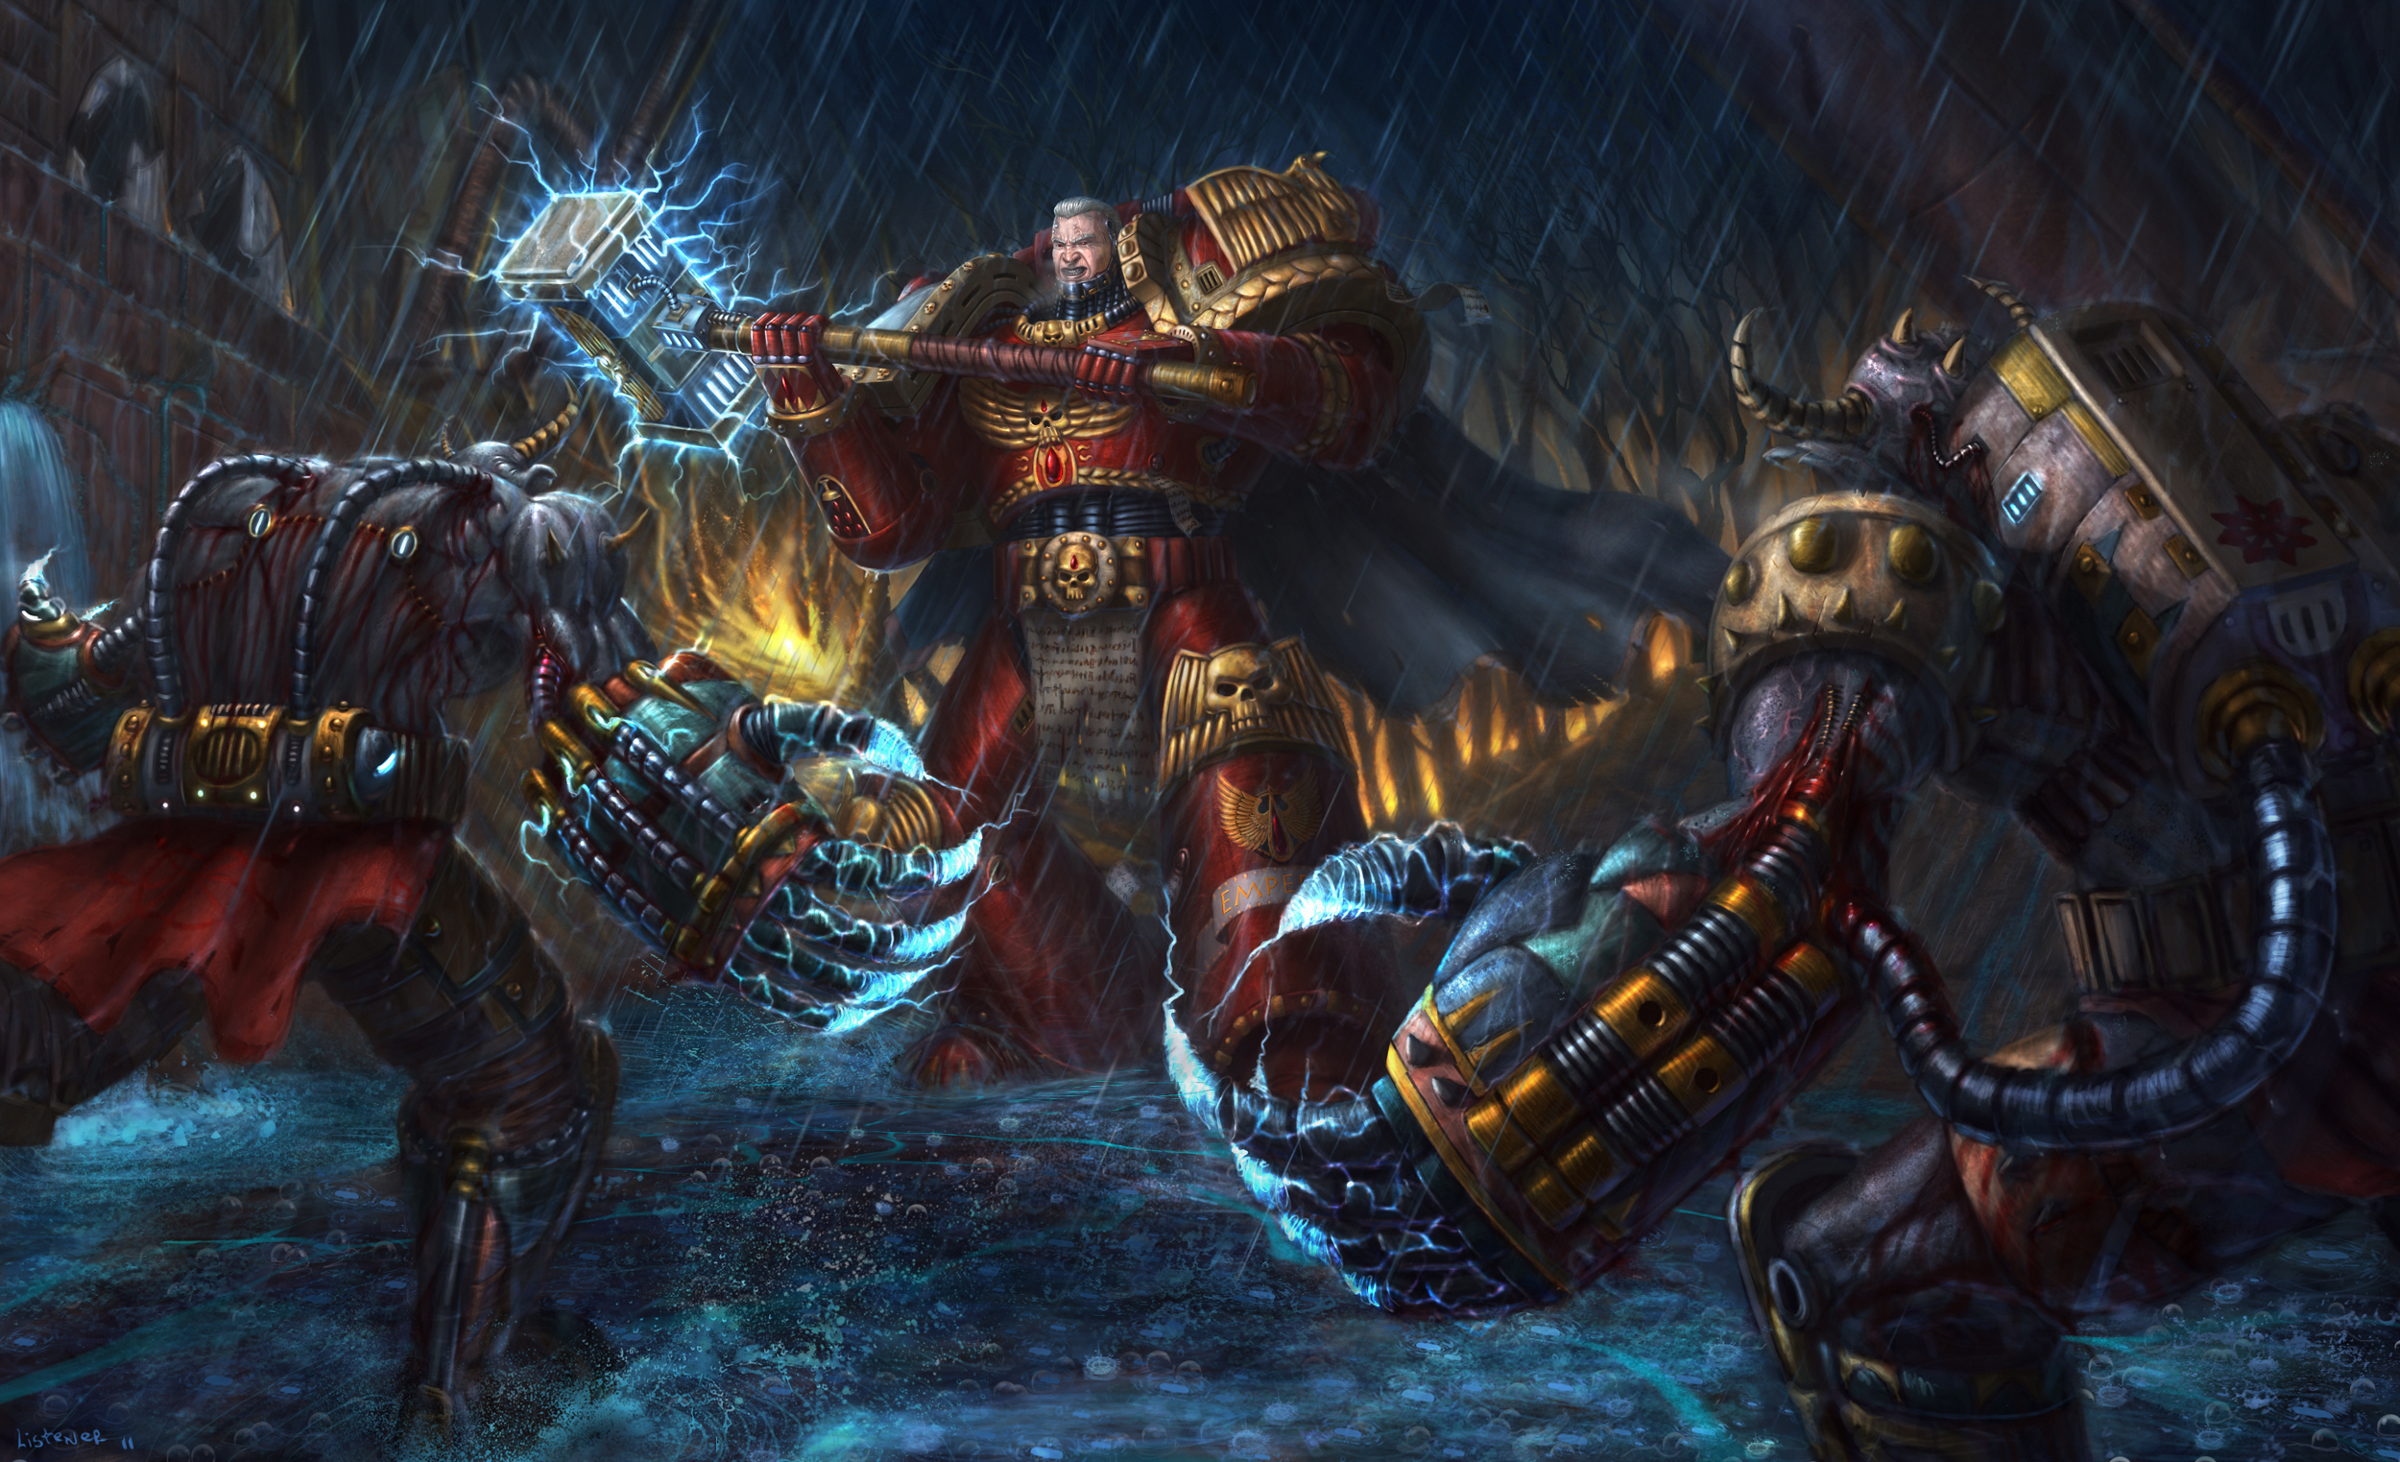 40k artwork image warhammer 40k fan group mod db